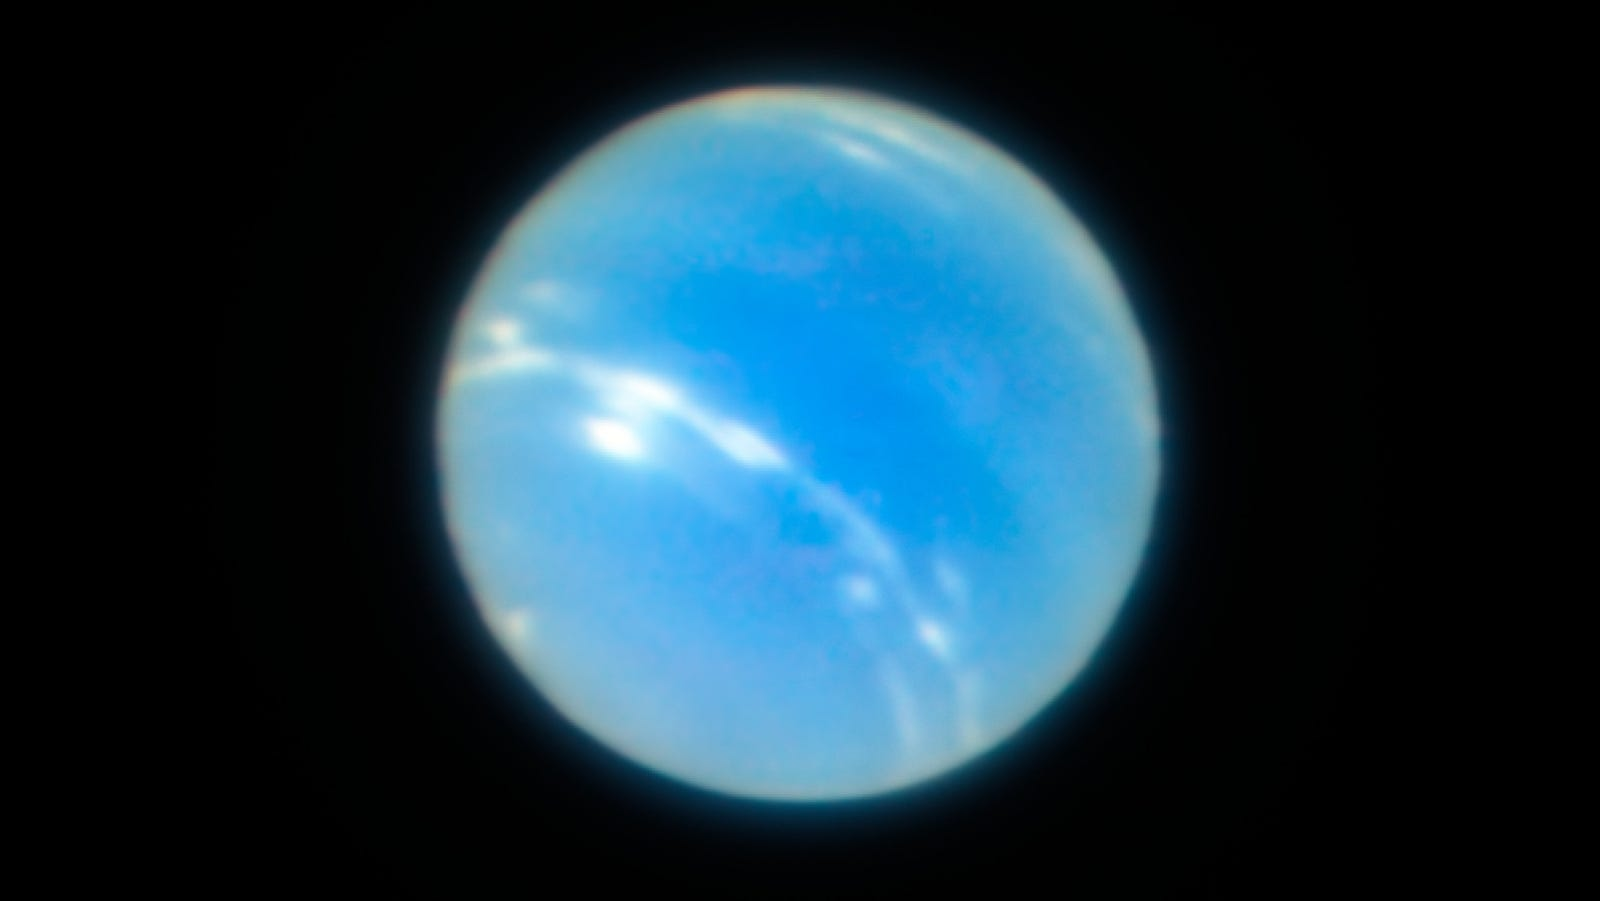 astronomy eso european-southern-observatory neptune planetary-science space telescopes very-large-telescope